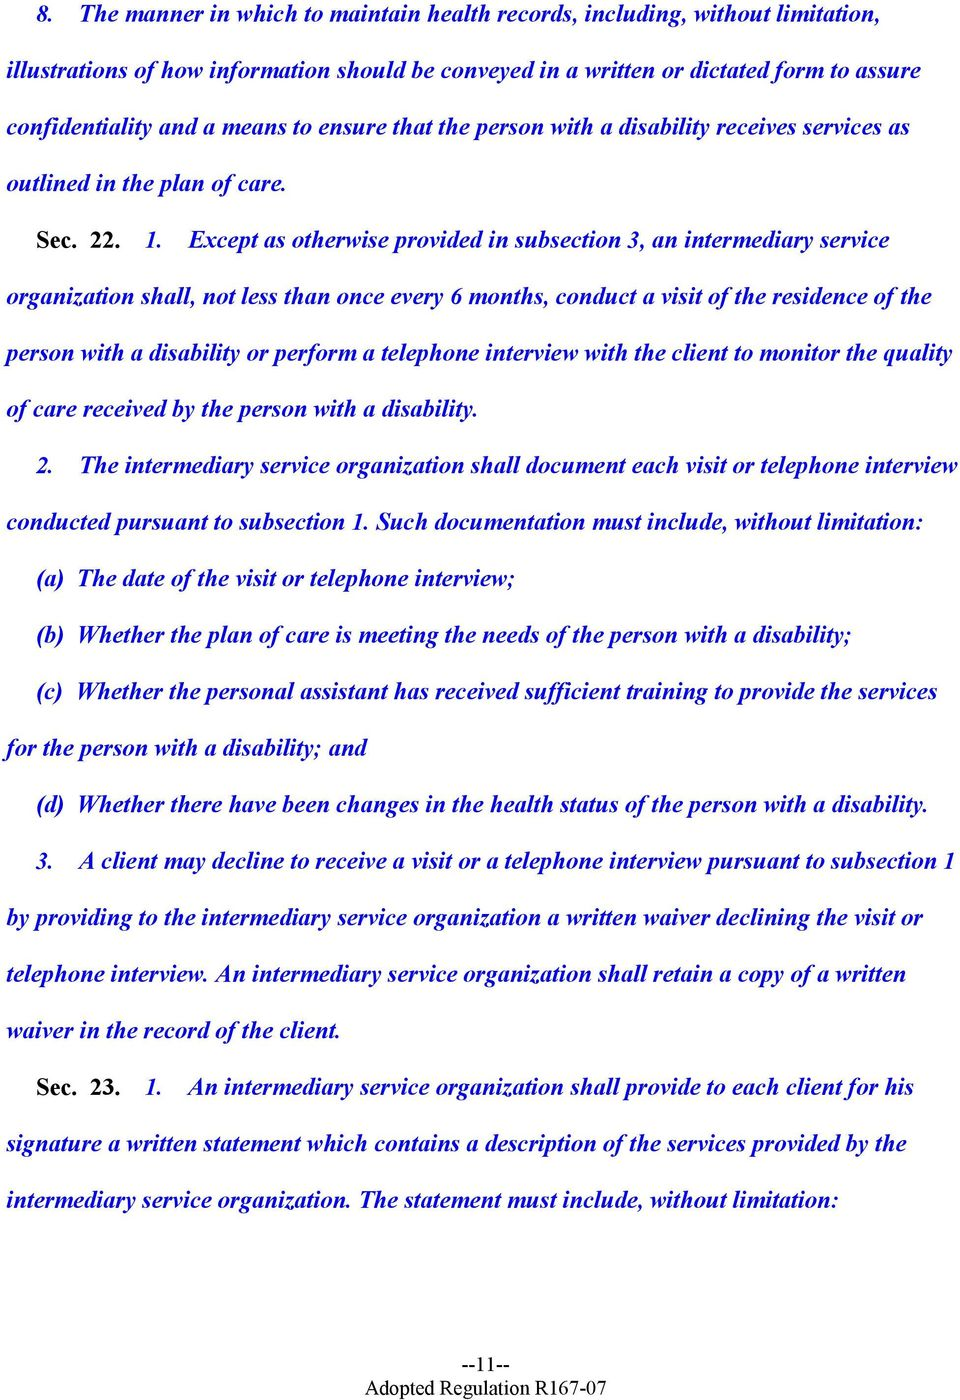 Except as otherwise provided in subsection 3, an intermediary service organization shall, not less than once every 6 months, conduct a visit of the residence of the person with a disability or